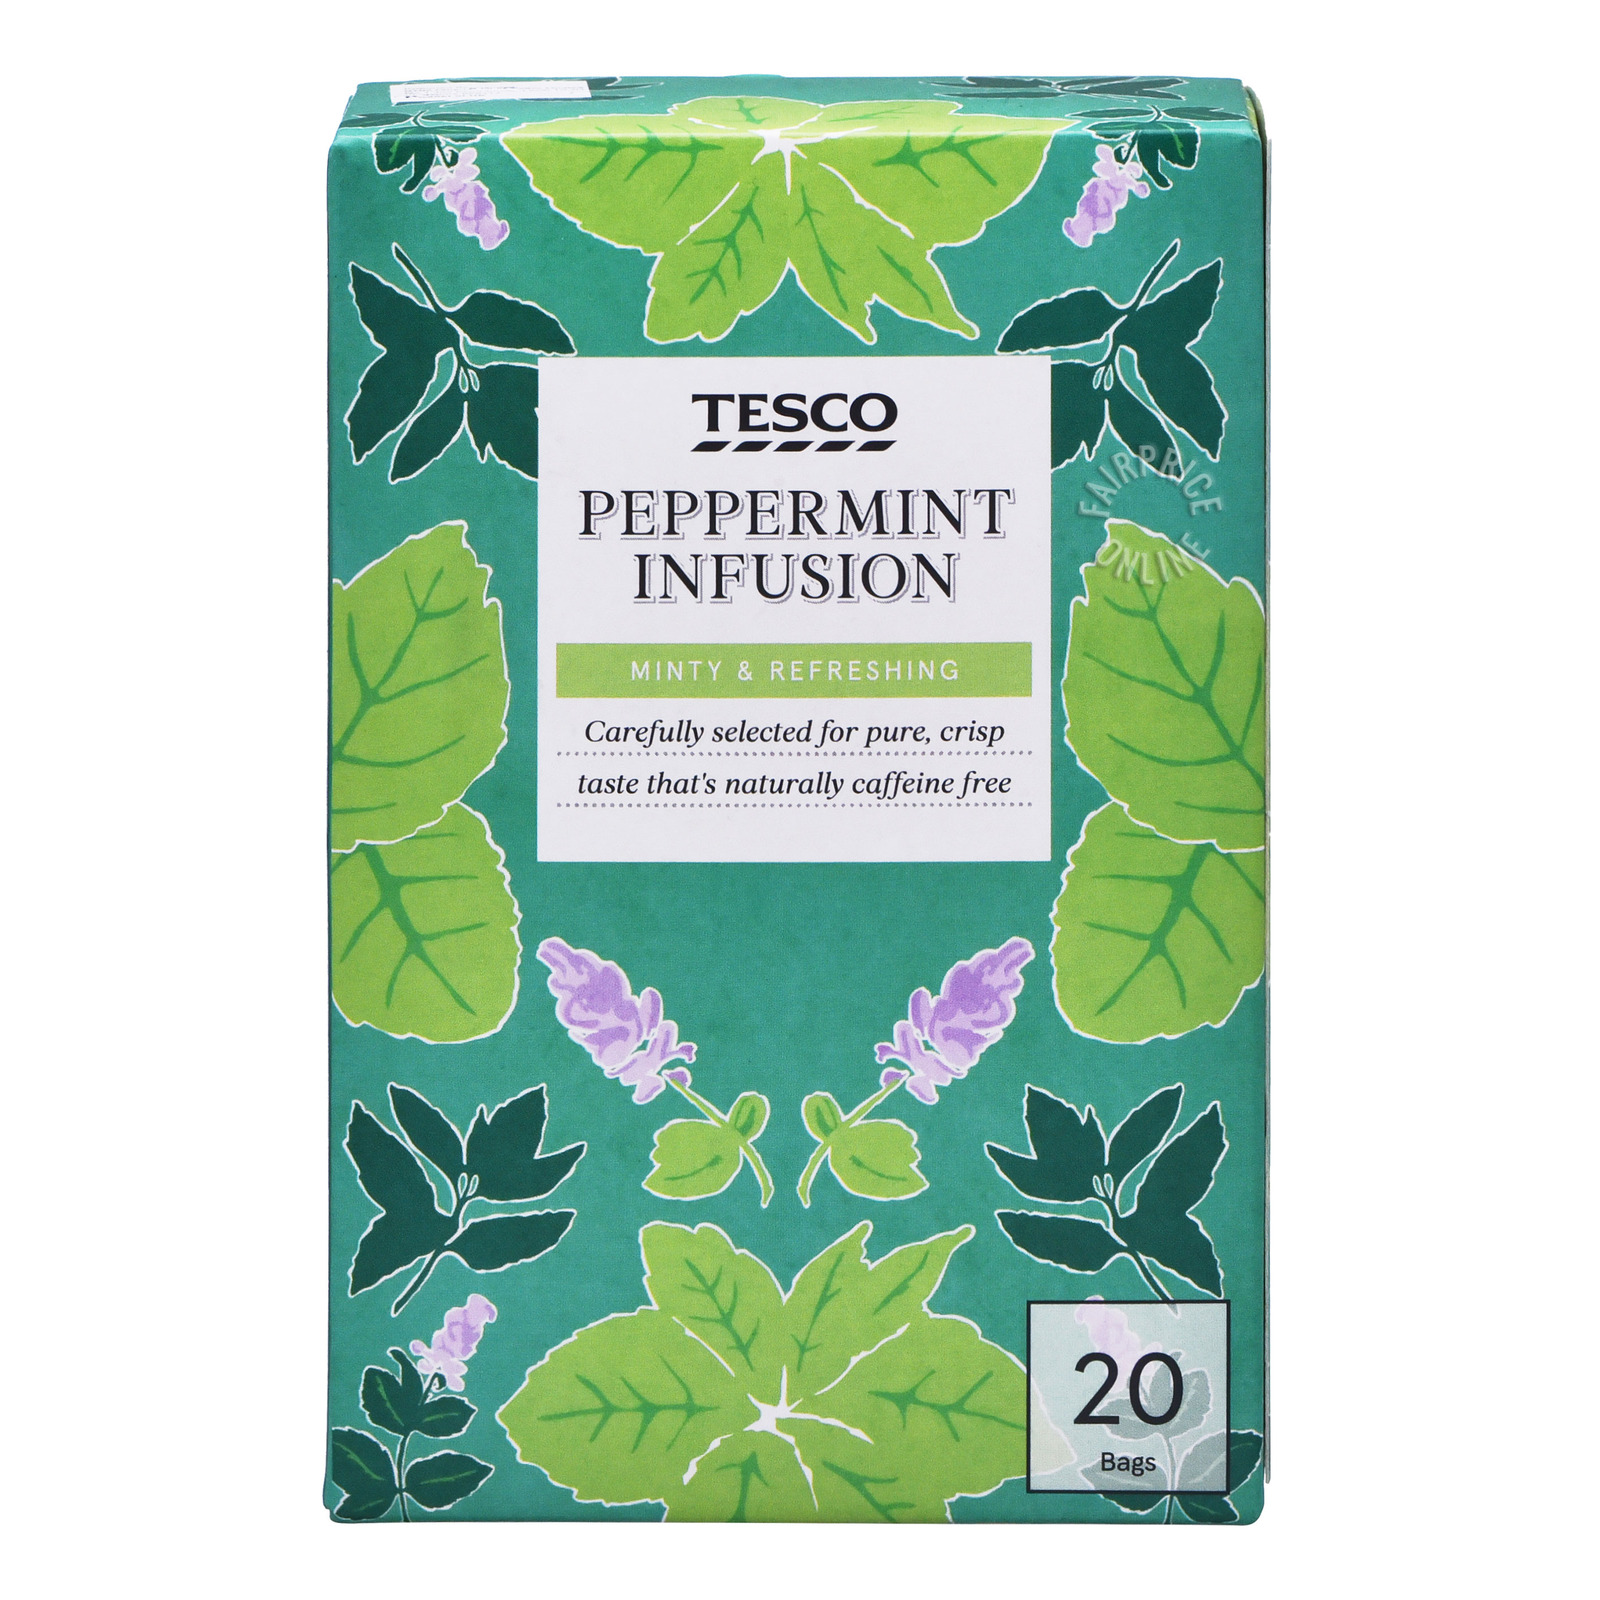 DILMAH Tea Bags - Pure Peppermint Tea 20sX1.5g